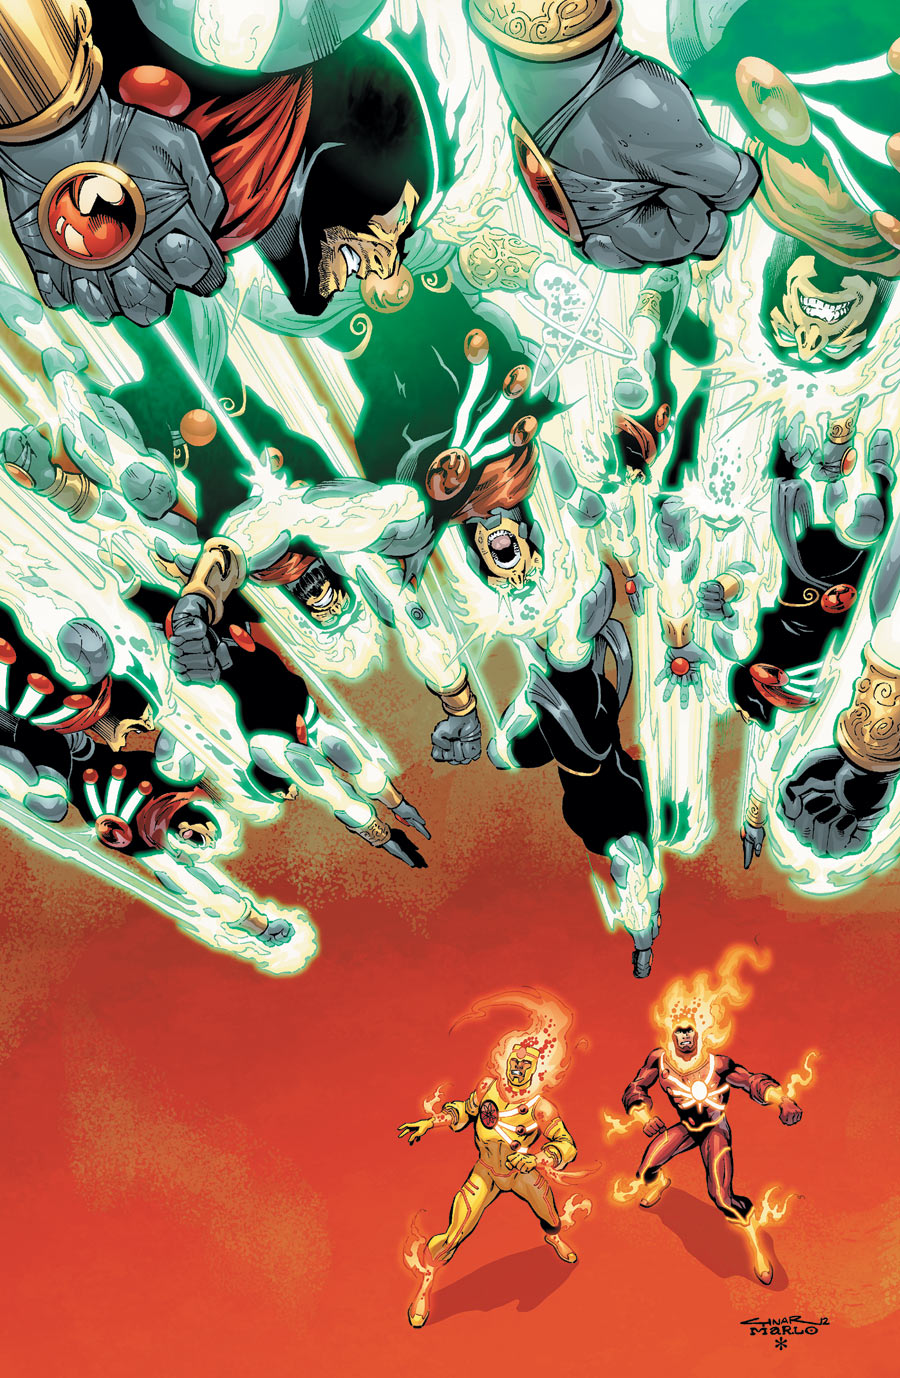 Fury of Firestorm: The Nuclear Men #12 cover by Yildiray Cinar, Marlo Alquiza, and Hi-Fi color